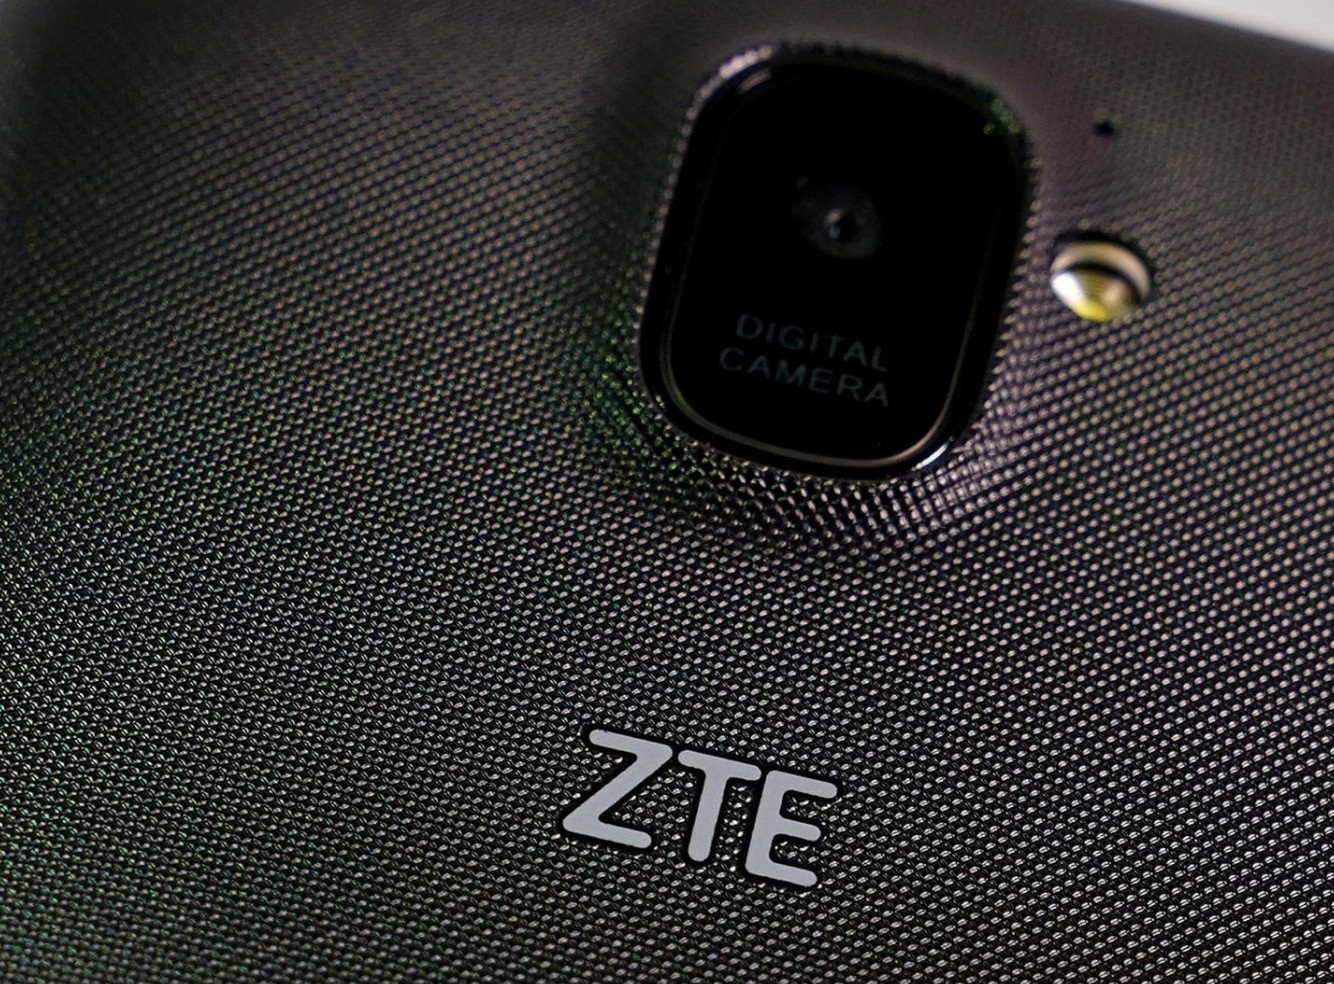 A ZTE smart phone is pictured in this illustration taken April 17, 2018. (Reuters Photo)